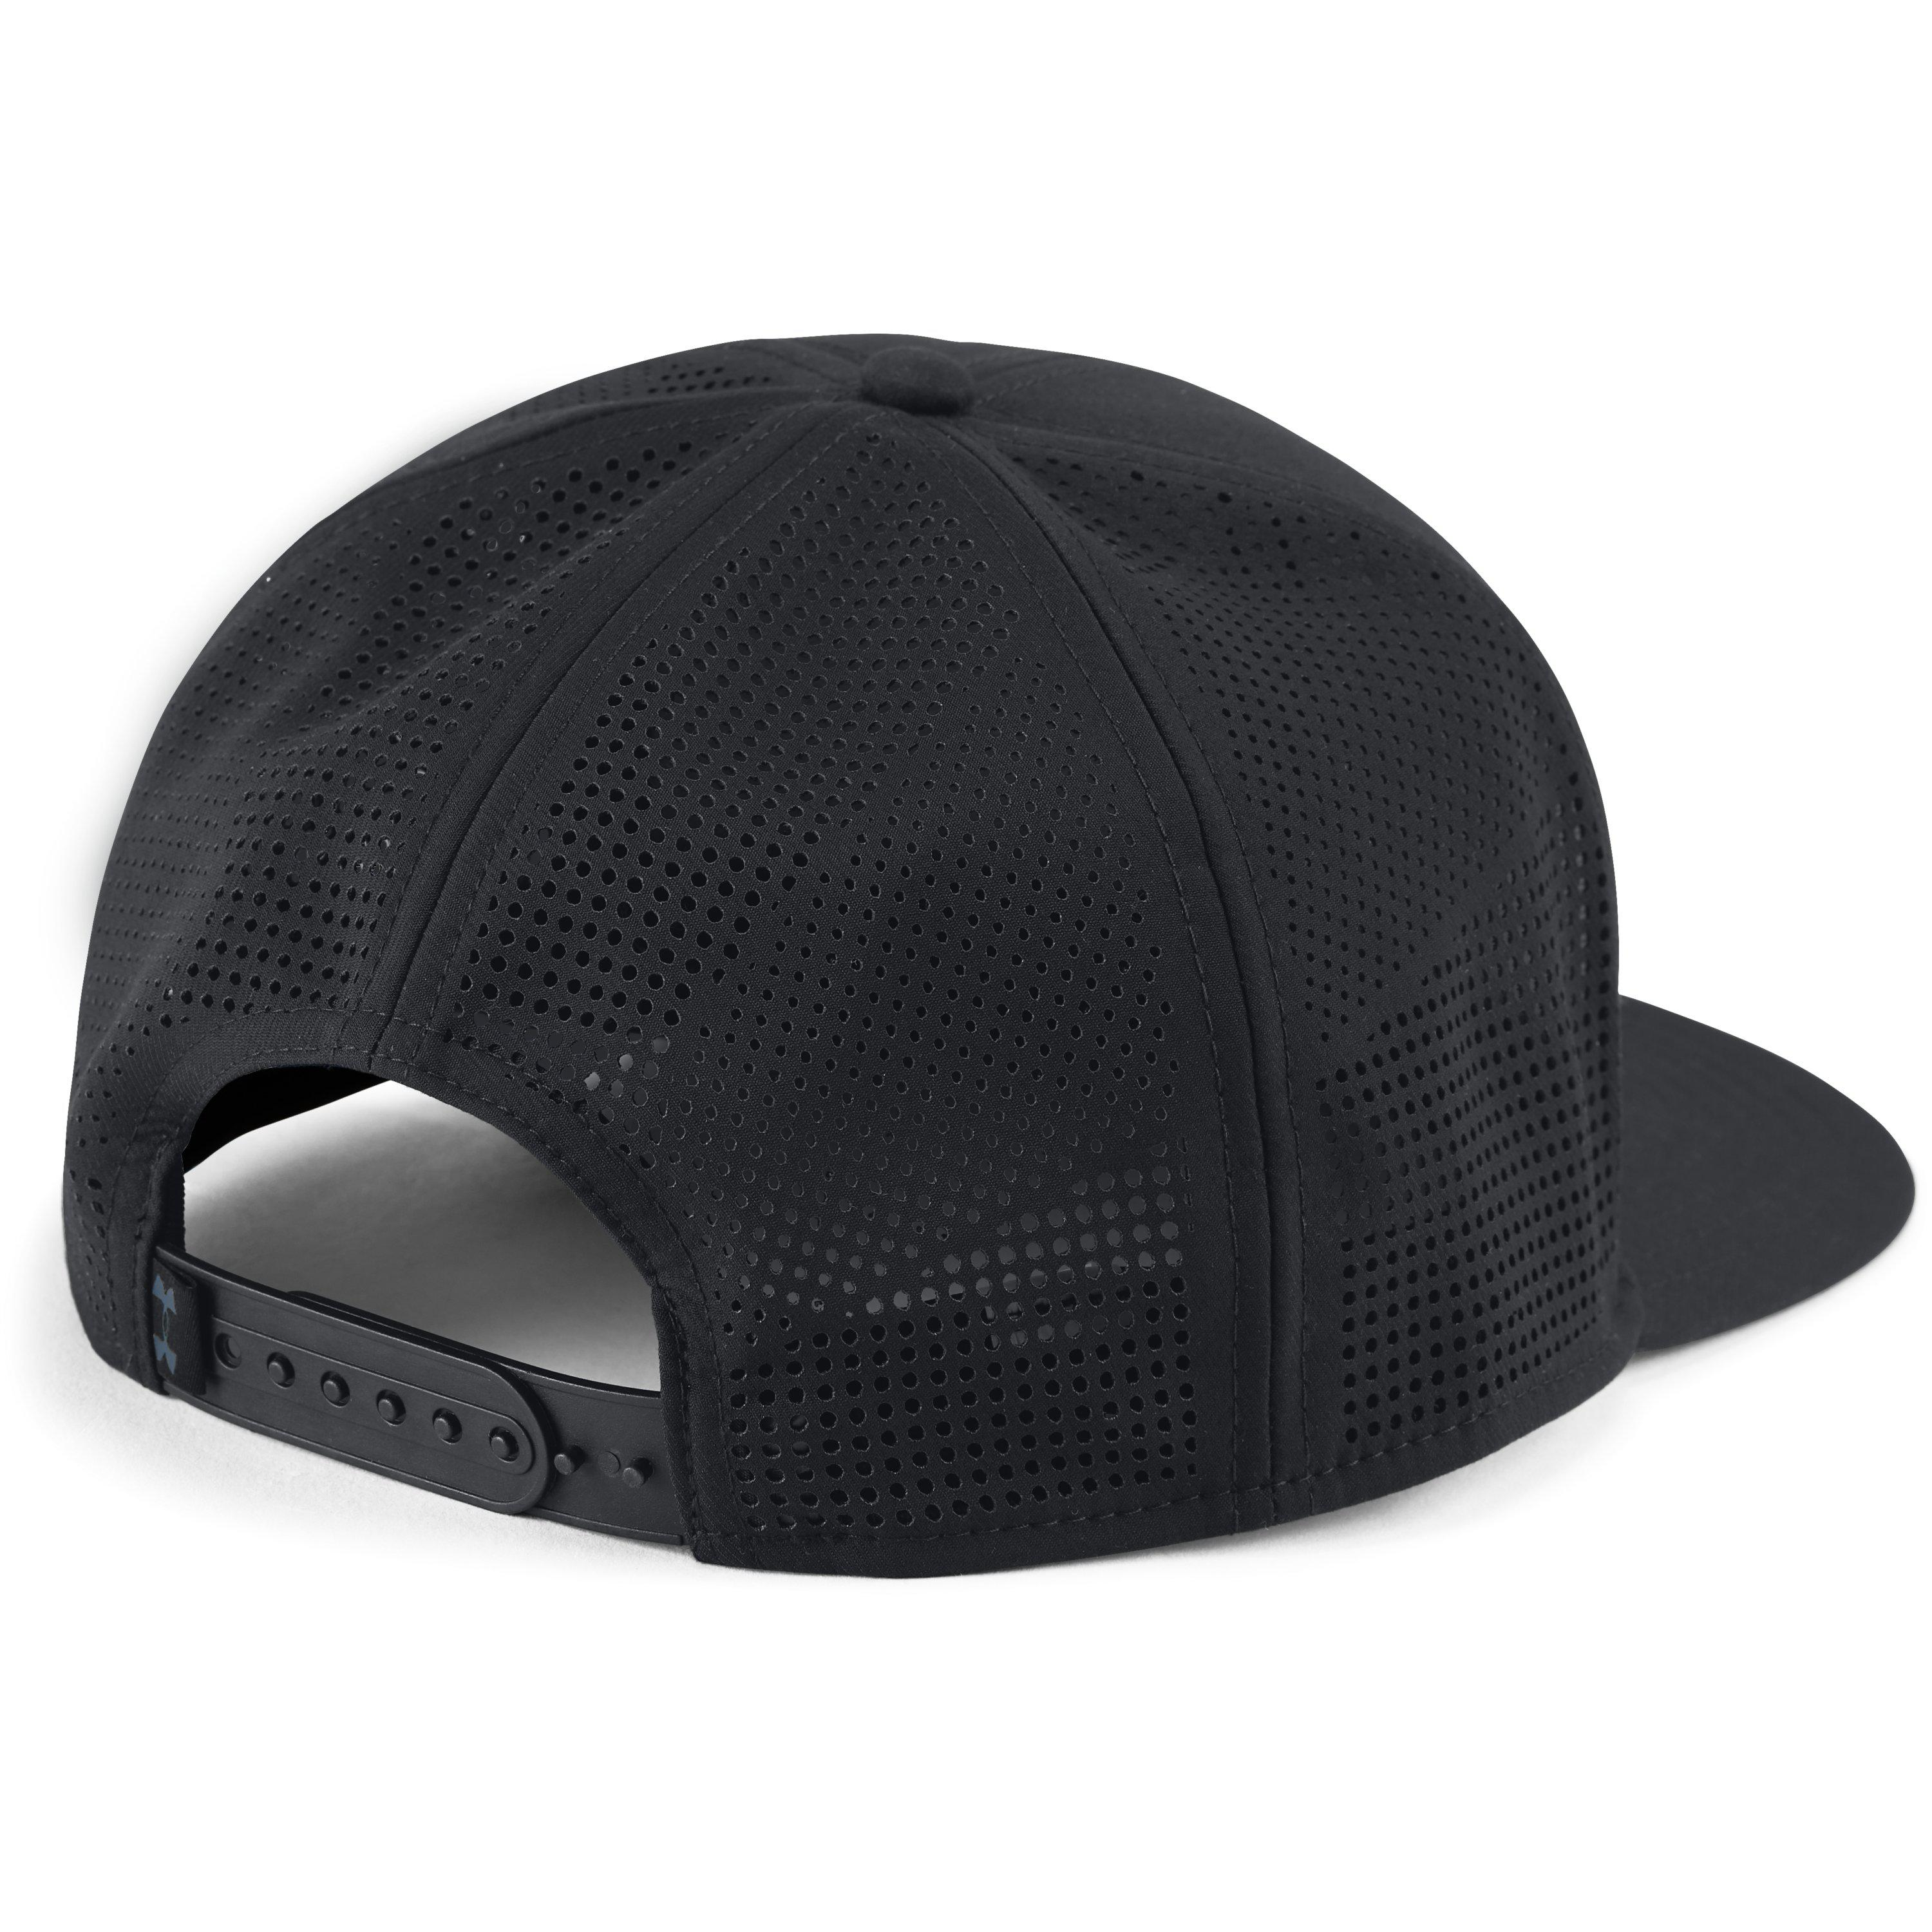 cheaper db078 a0f06 ... promo code for under armour black mens mlb supervent cap for men lyst.  view fullscreen